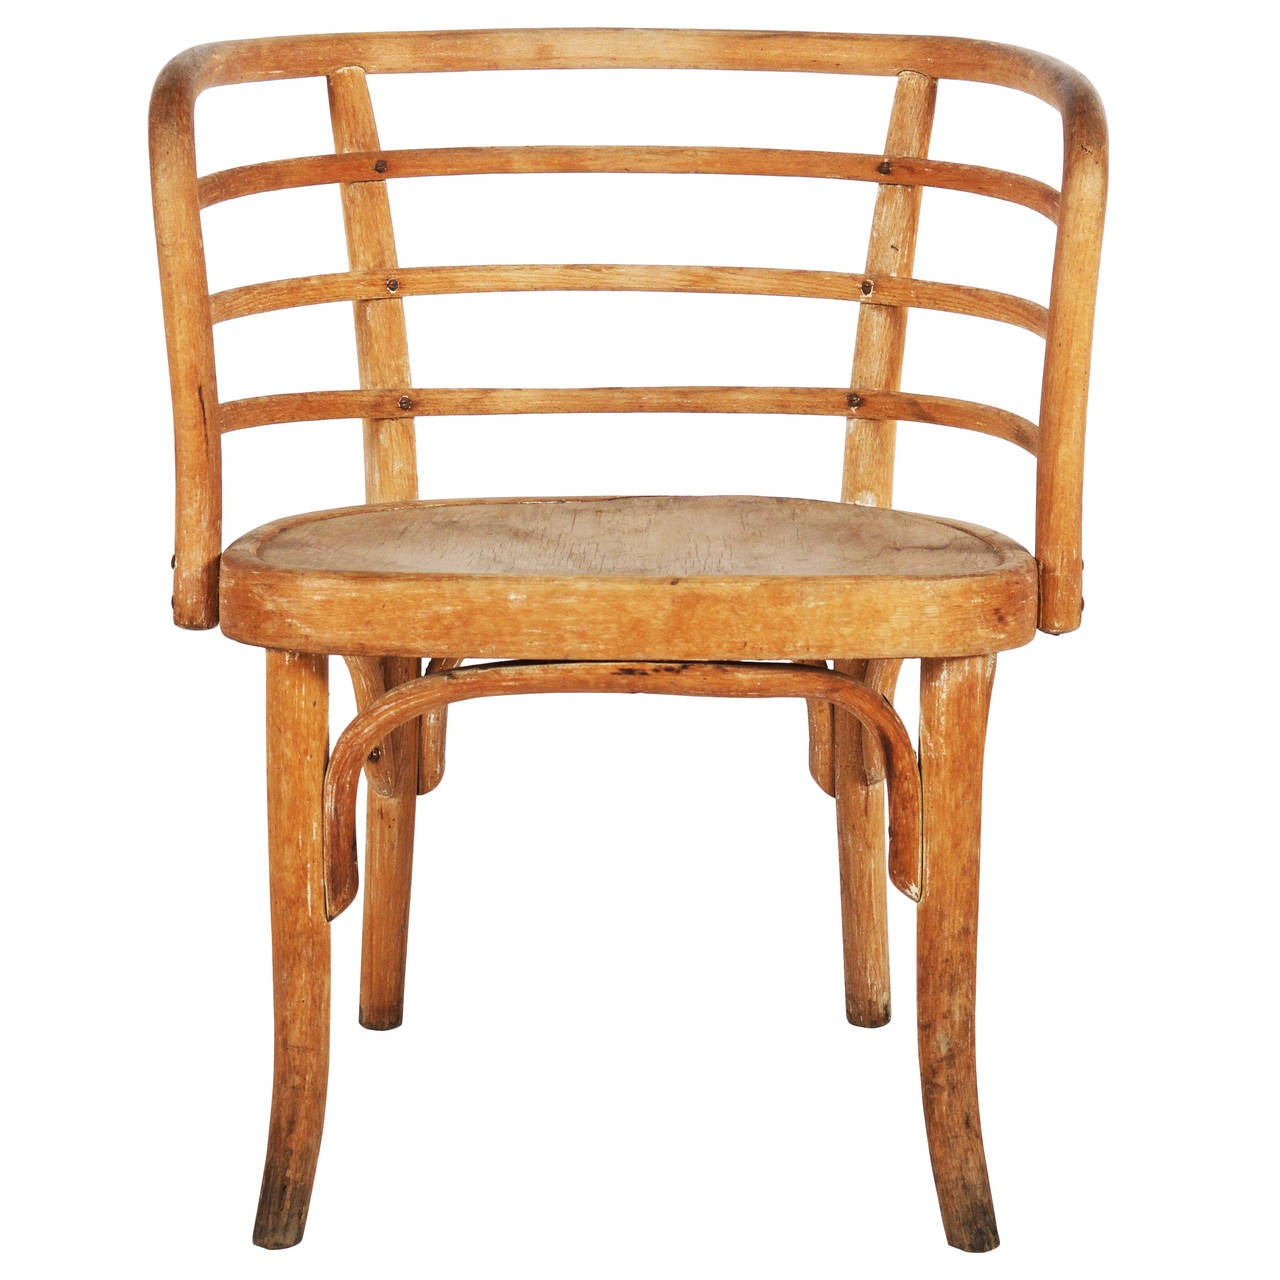 Rare Thonet Armchair Attributed To Josef Frank For Sale At